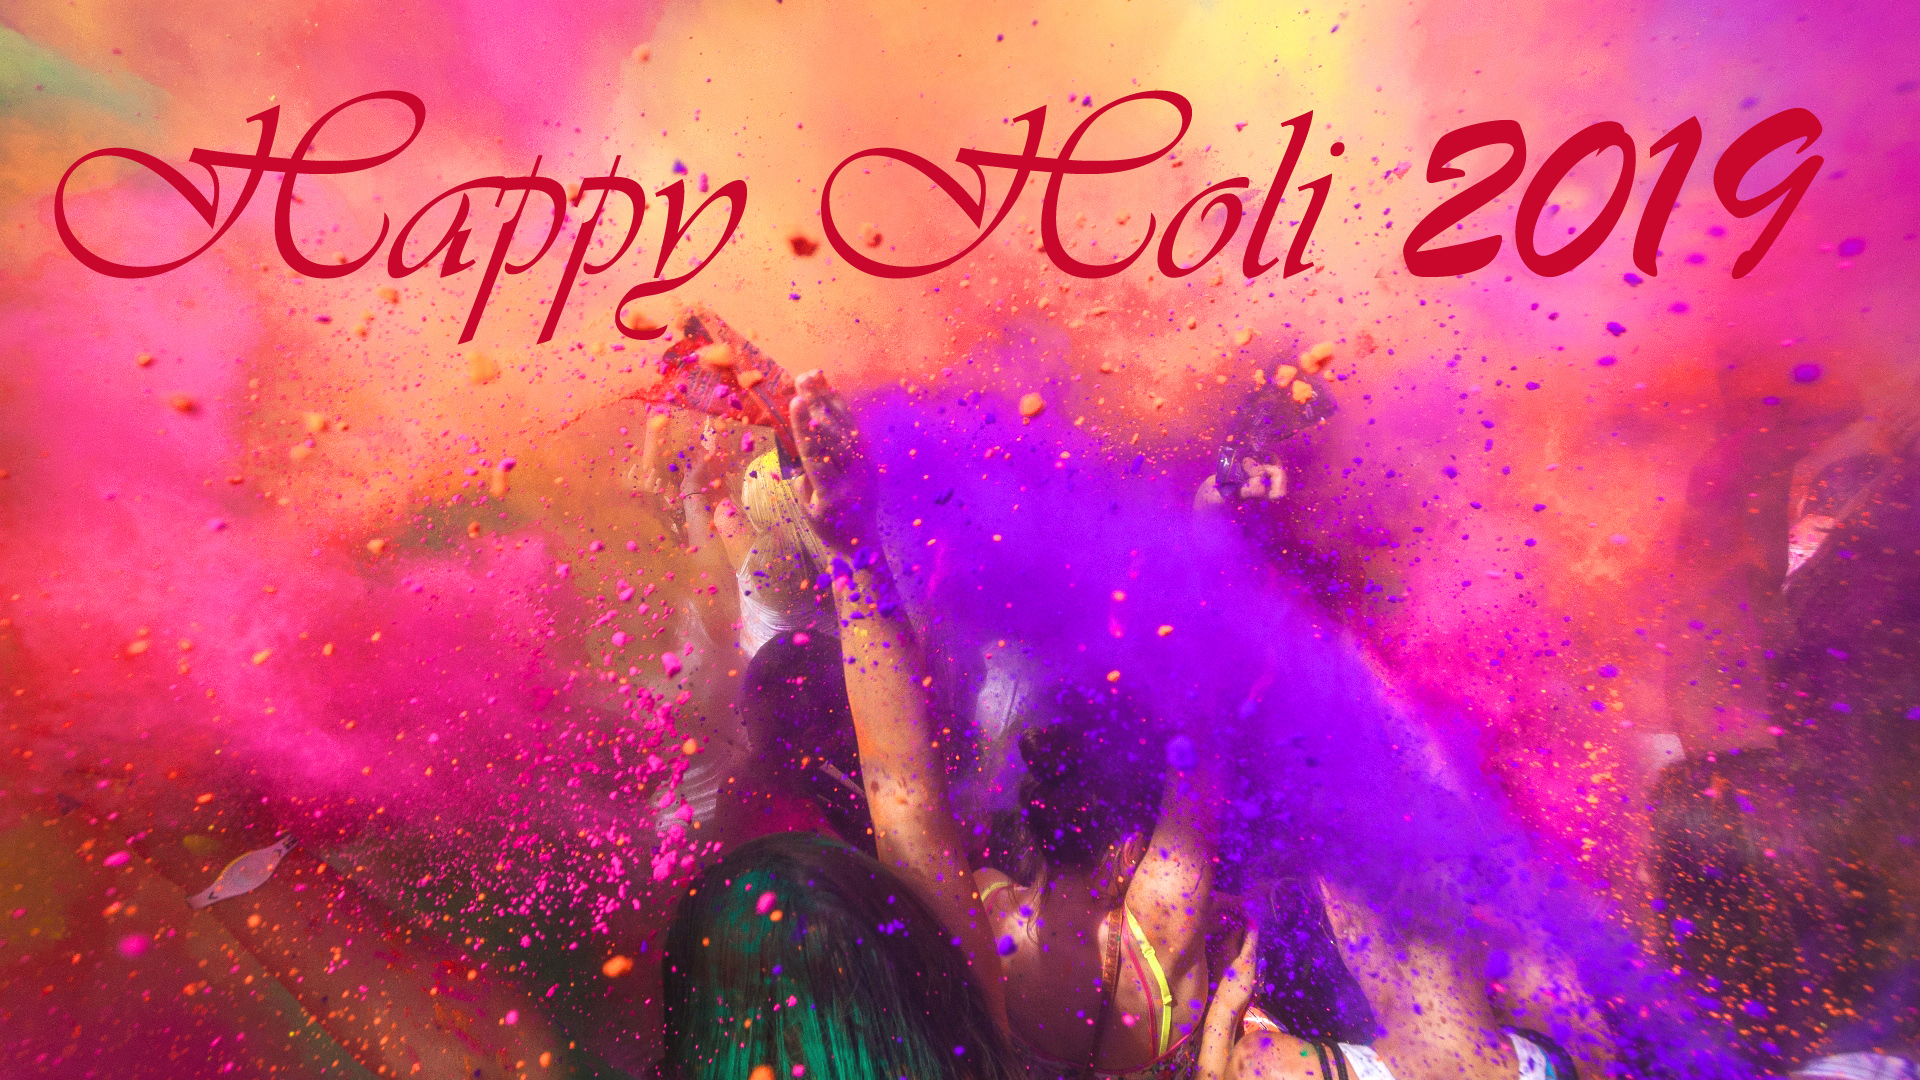 holi india 2018 wallpaper in hd resolution | hd wallpapers